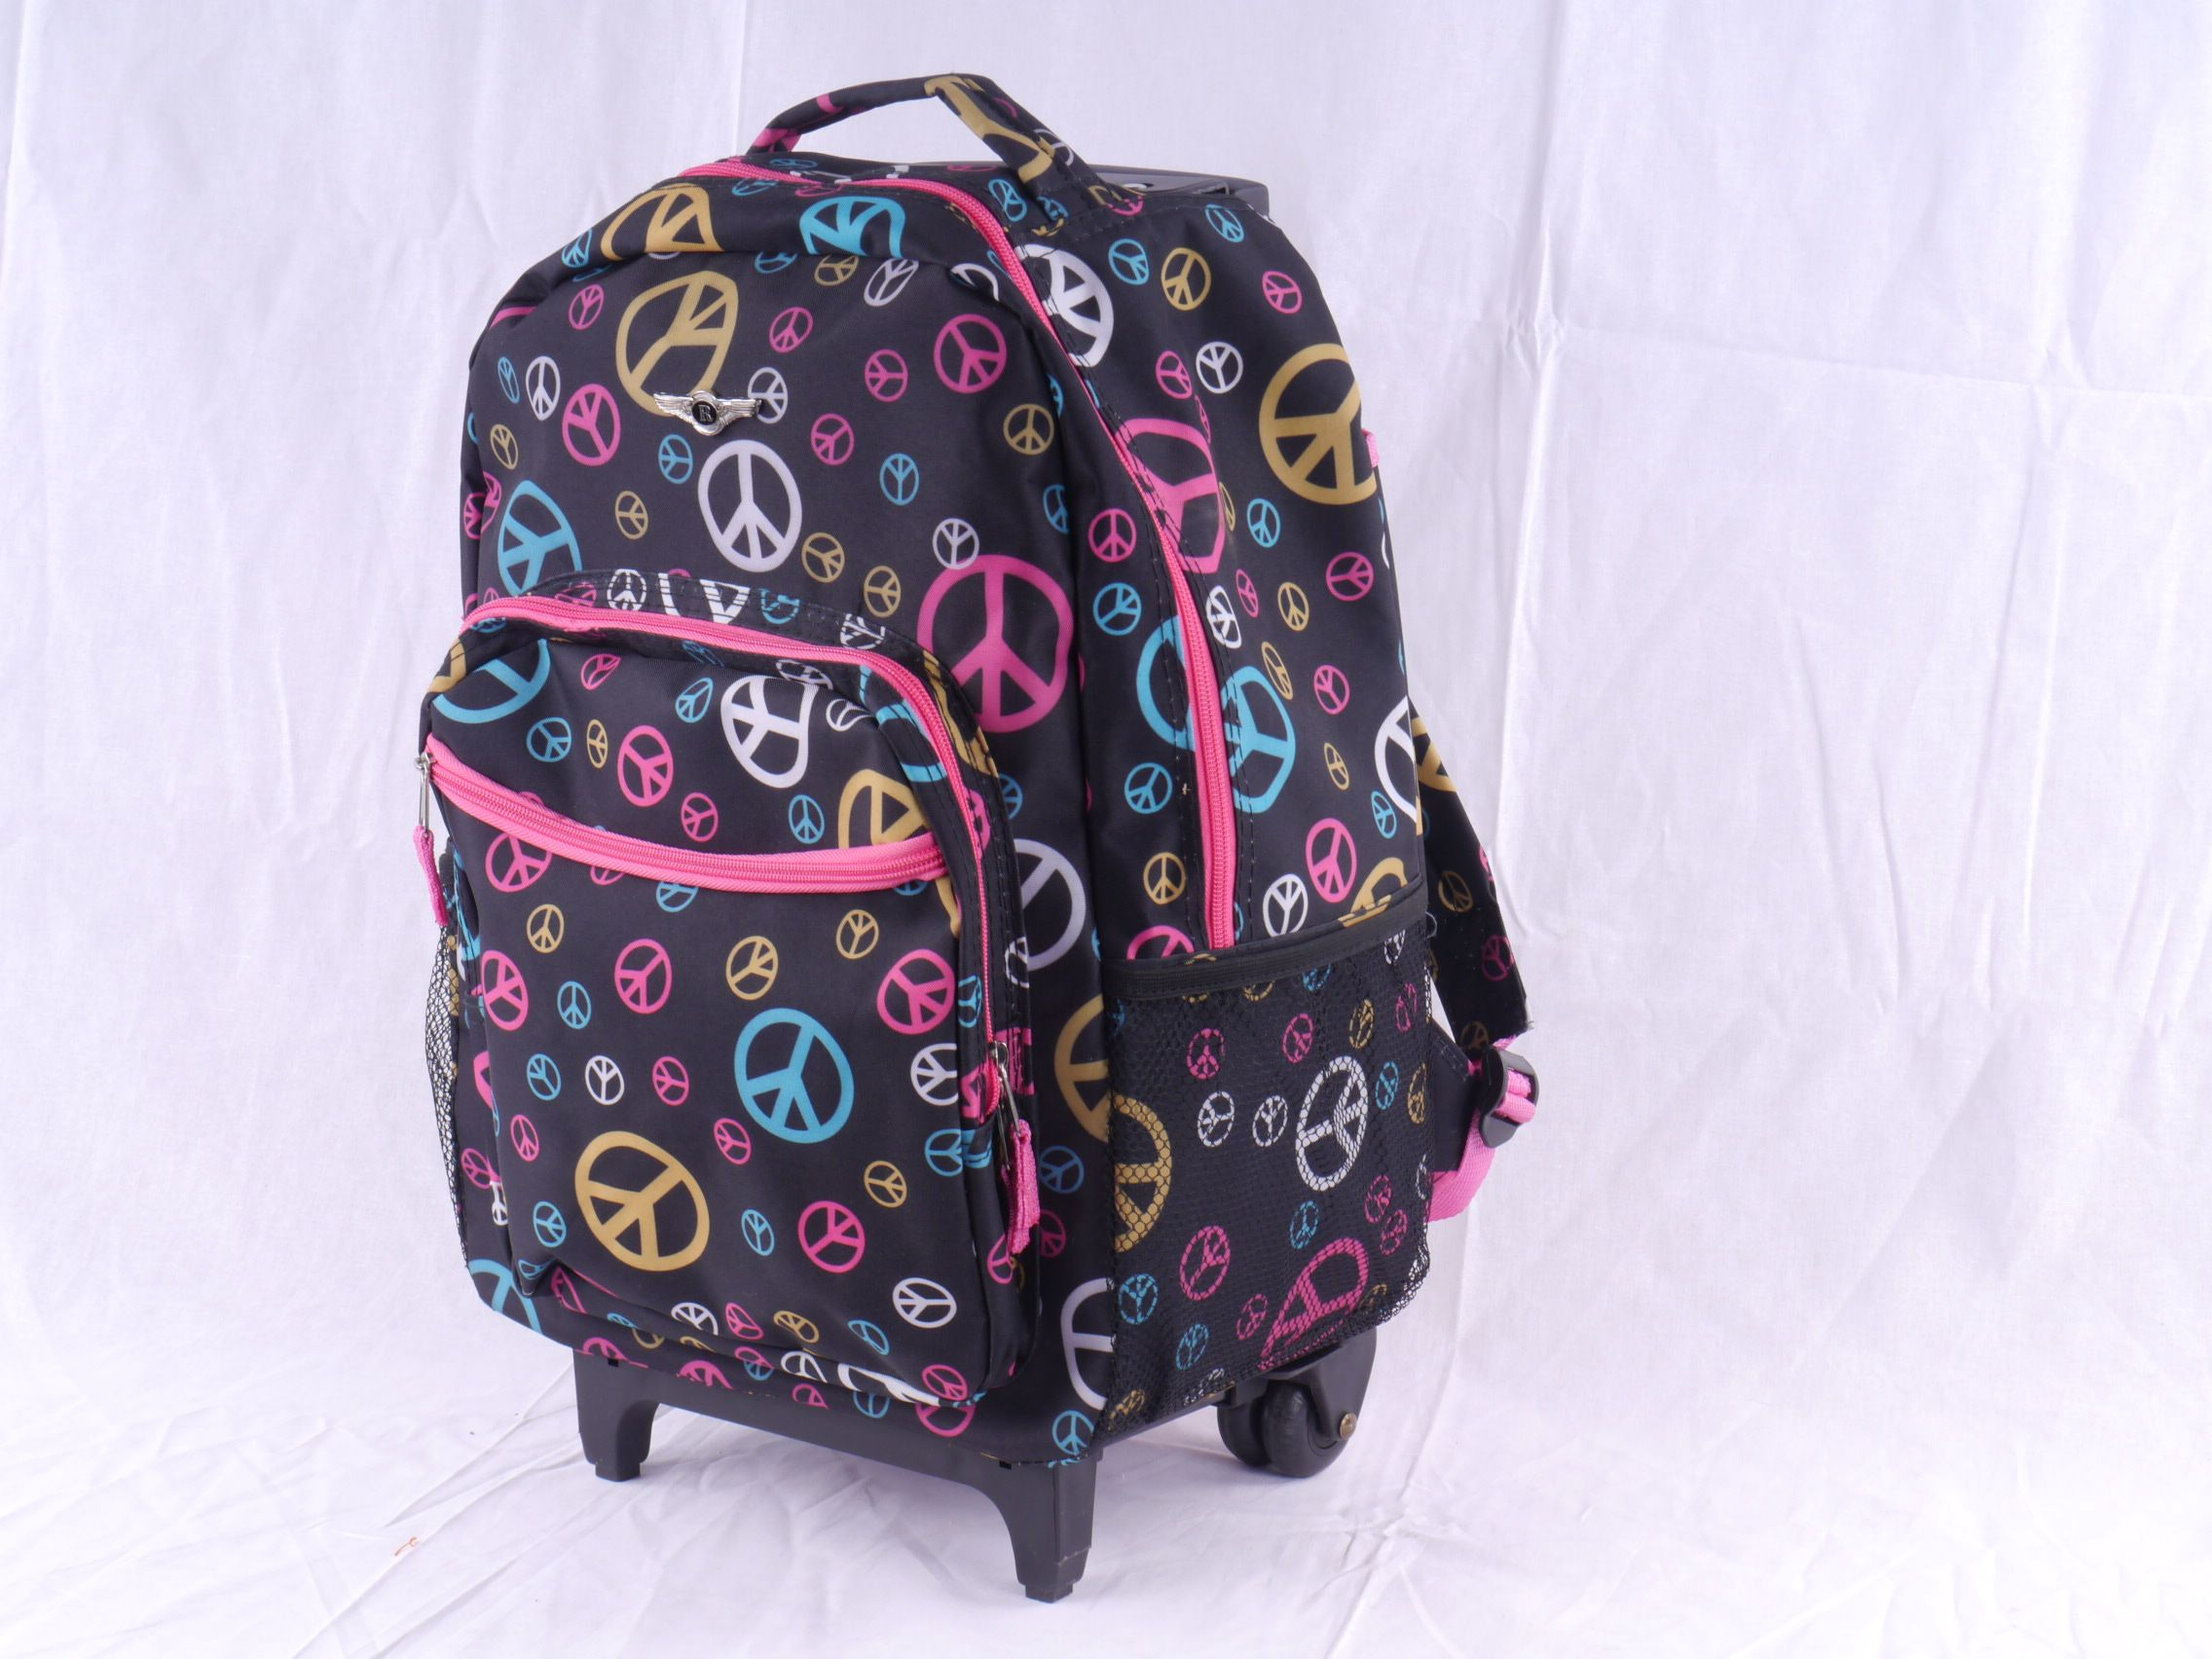 f4d3abf3e9bc Rockland Luggage 17 Inch Rolling Backpack, $19.99 | Babies & Kids ...